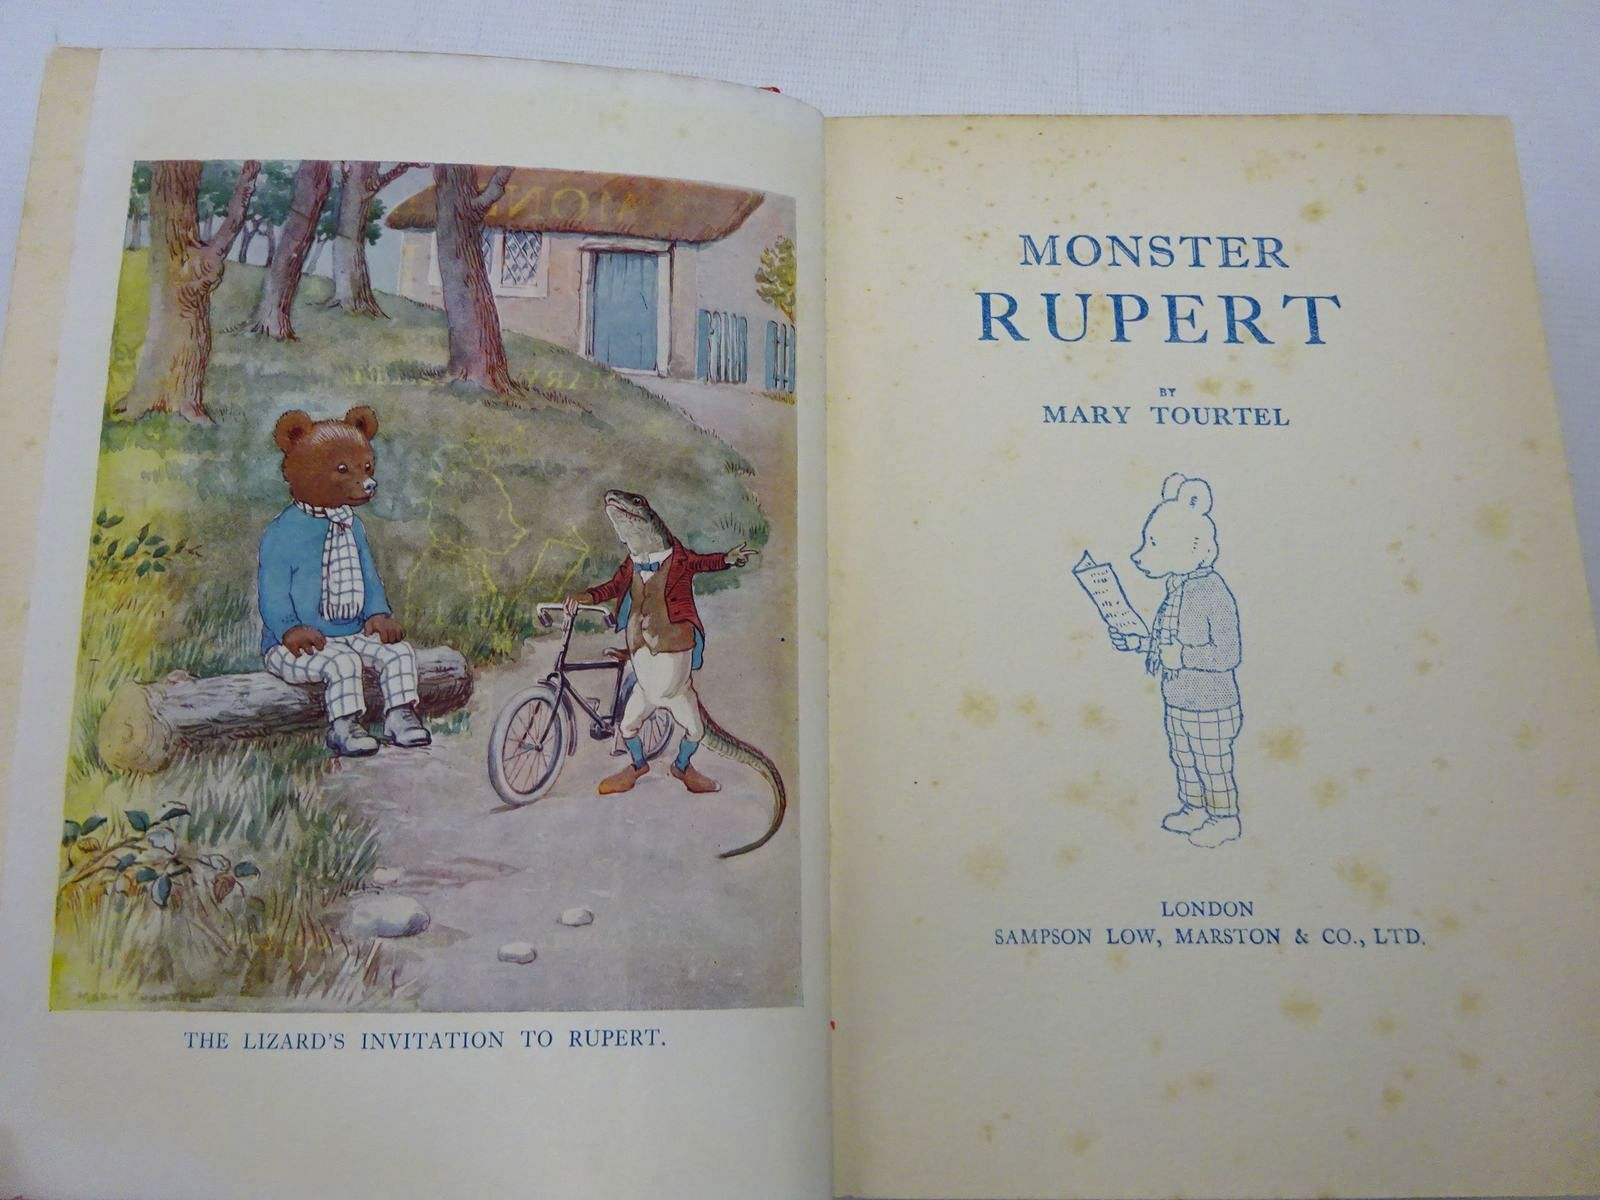 Photo of MONSTER RUPERT 1932 written by Tourtel, Mary illustrated by Tourtel, Mary published by Sampson Low, Marston & Co. (STOCK CODE: 2127321)  for sale by Stella & Rose's Books